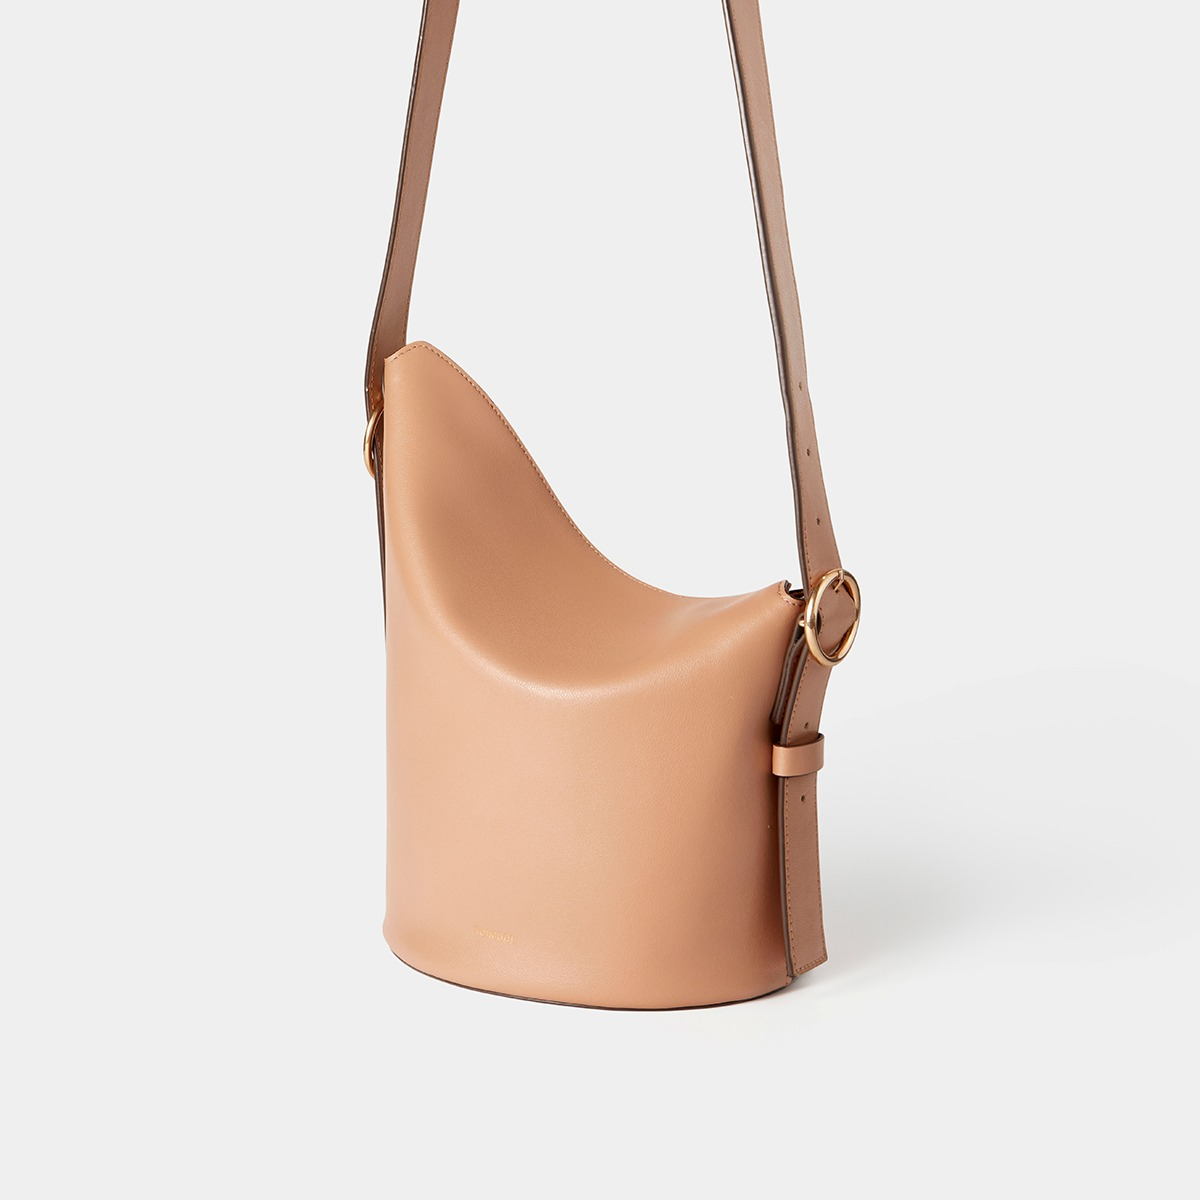 Another Bag (Pink beige)